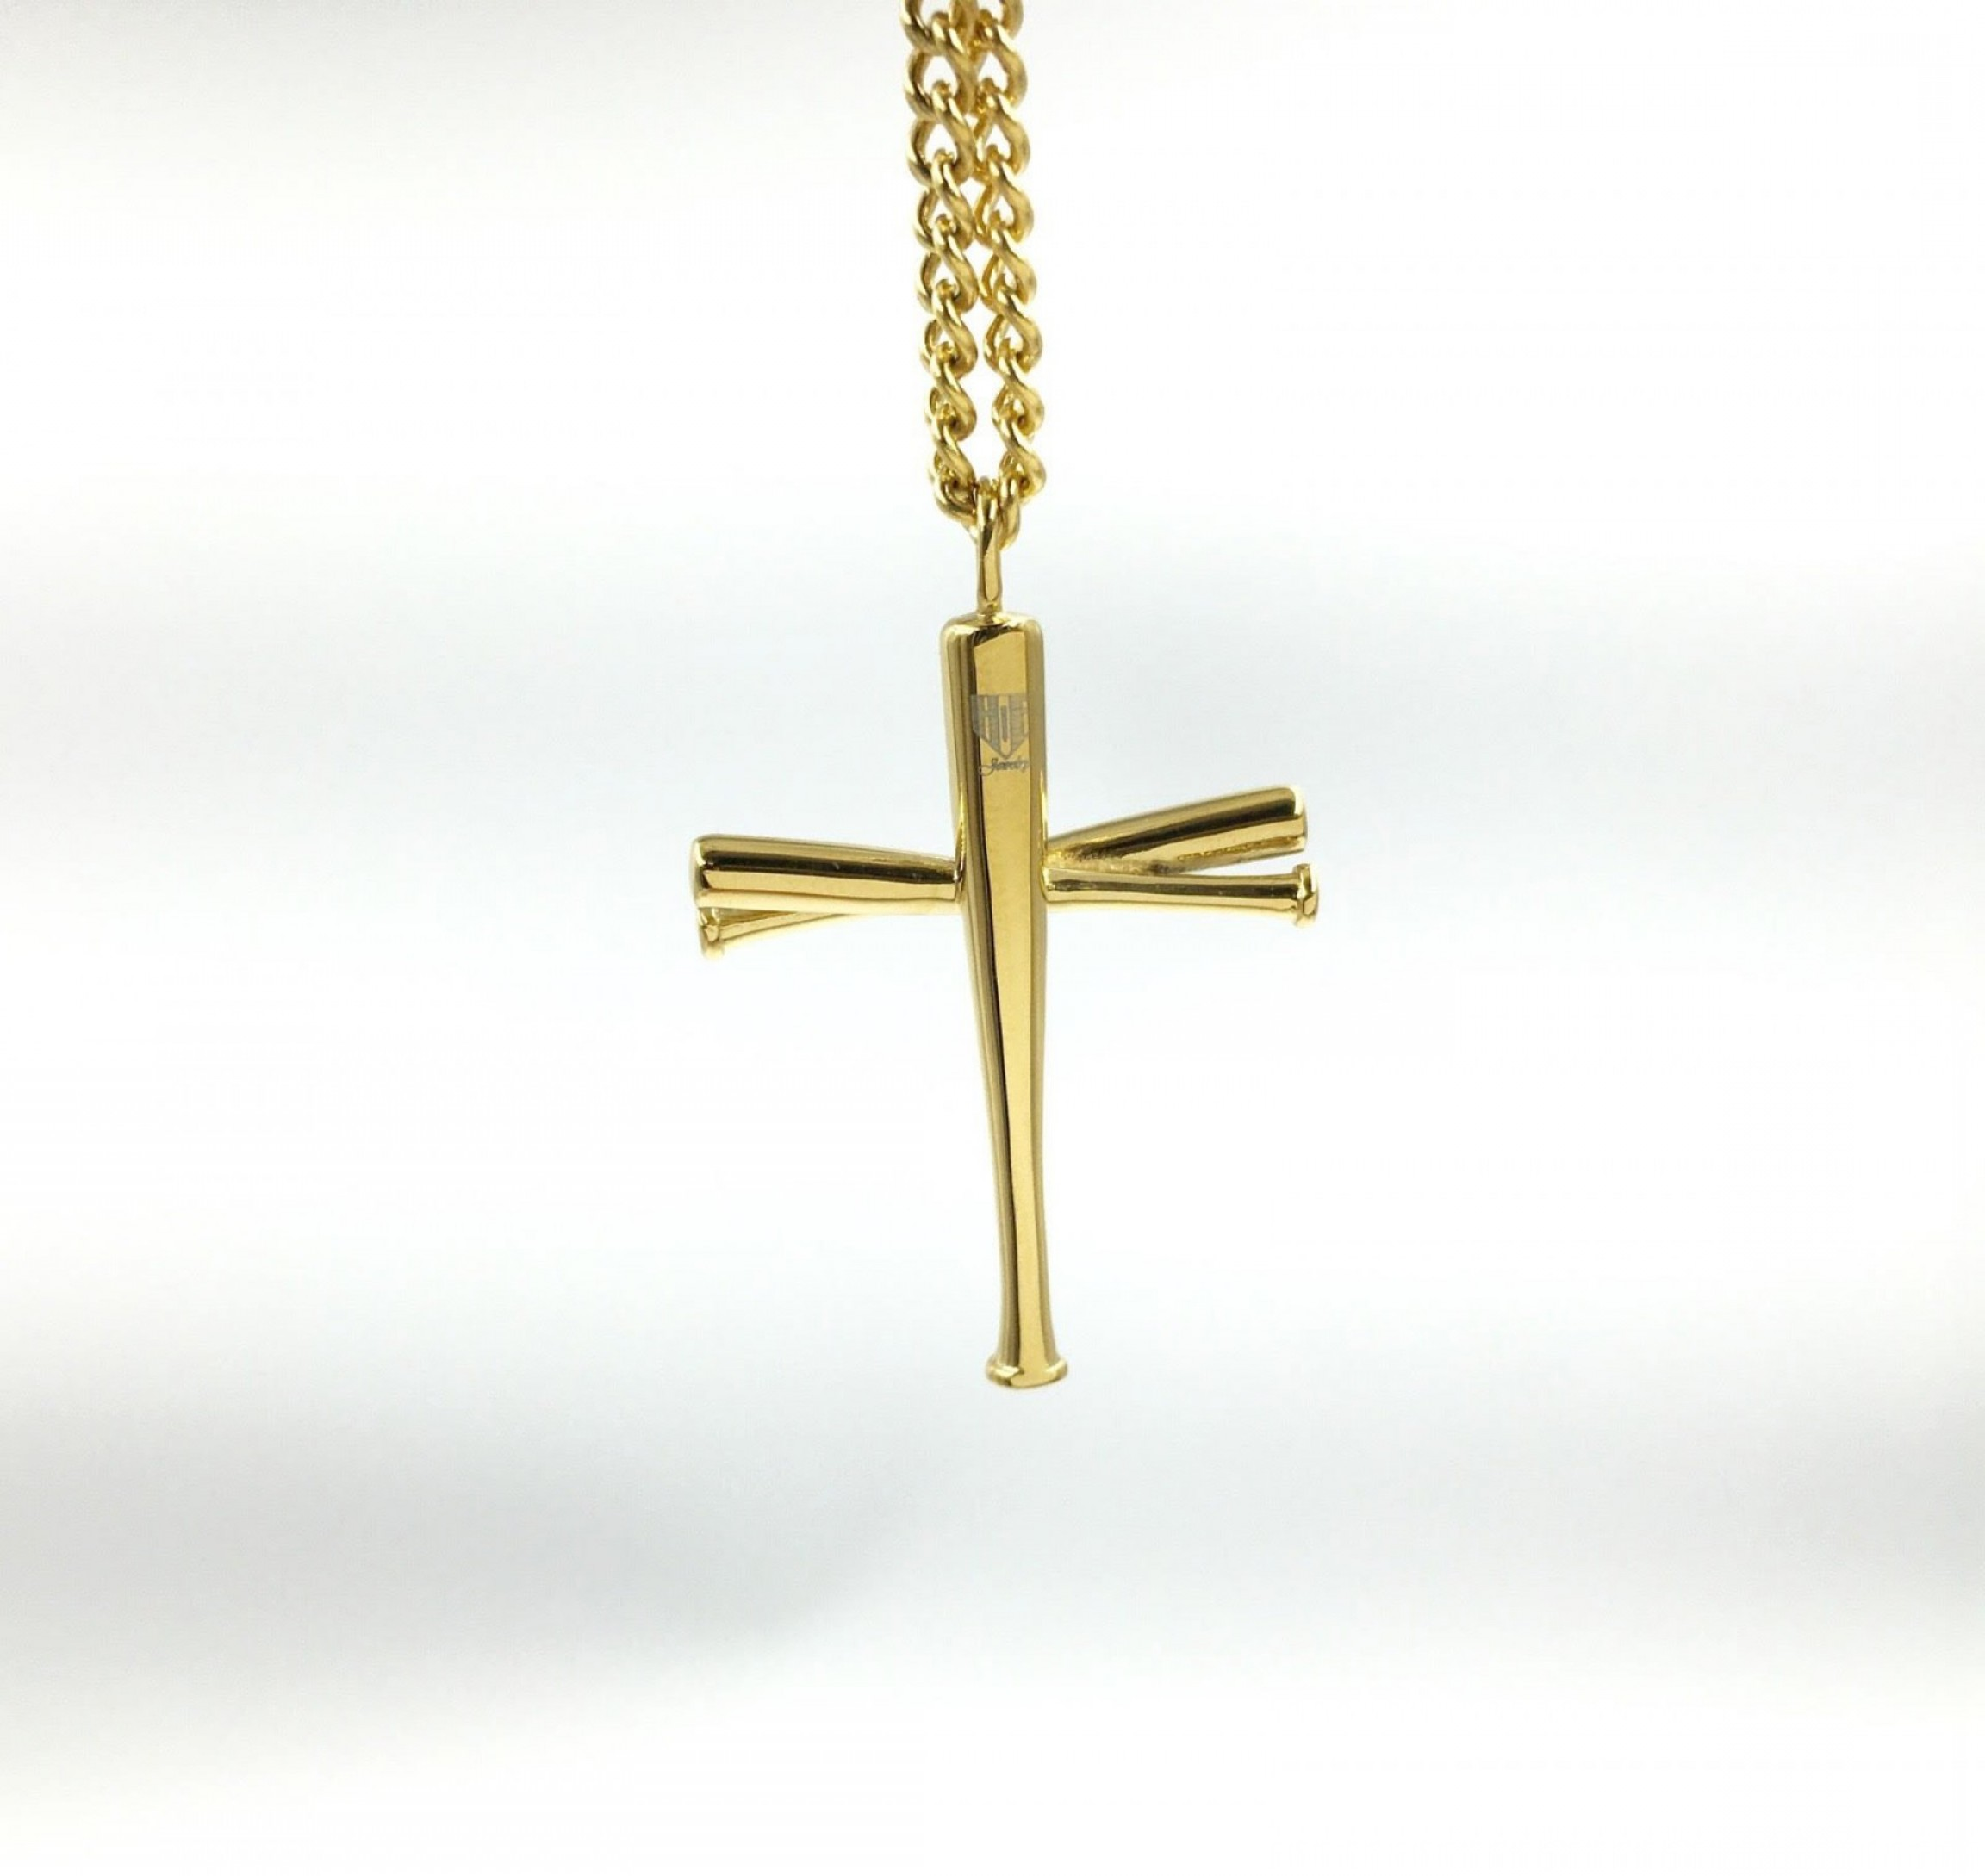 christian jewelry c necklaces necklace hei pendant women and j religious bai american softball for p flag baij baseball men cross